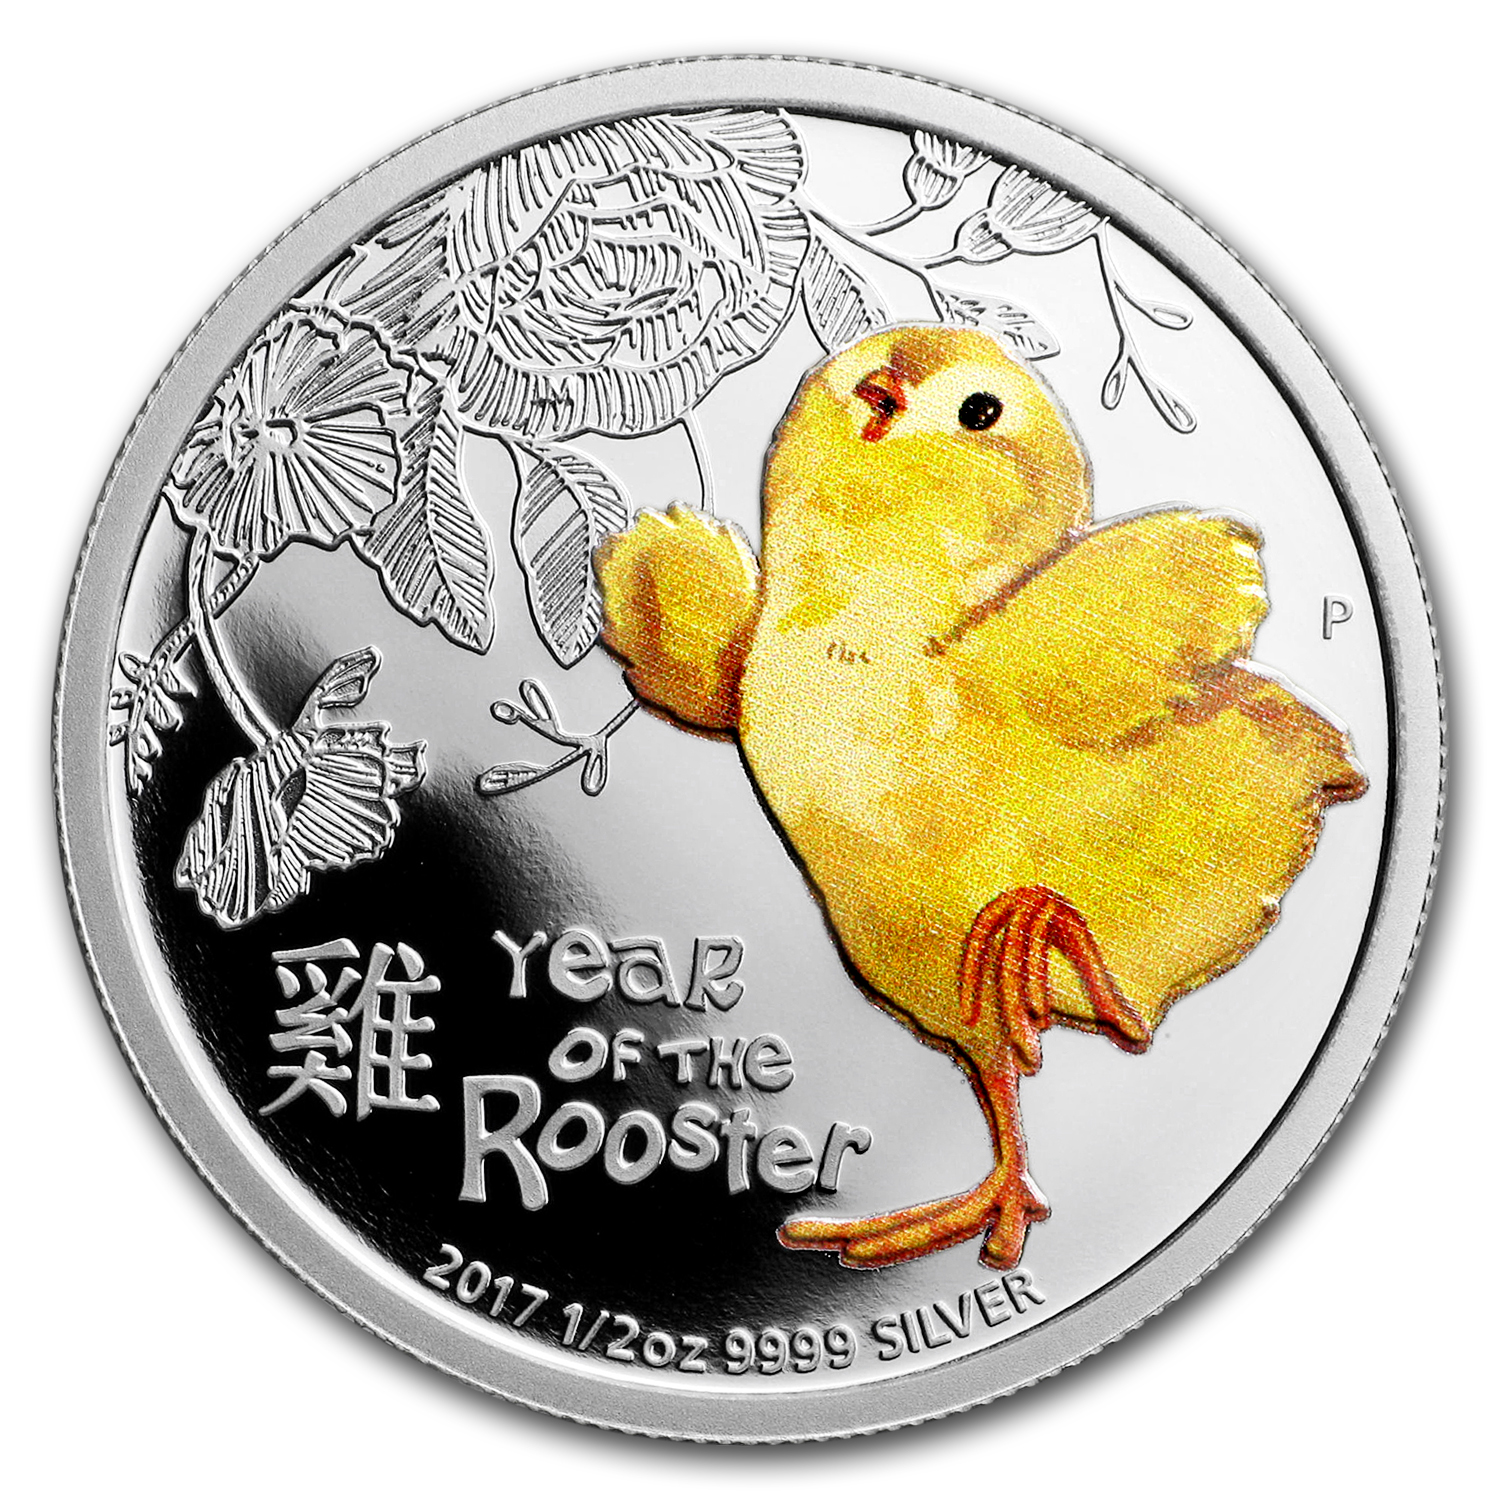 2017 Tuvalu 1/2 oz Silver Lunar Baby Rooster Proof (Colorized)